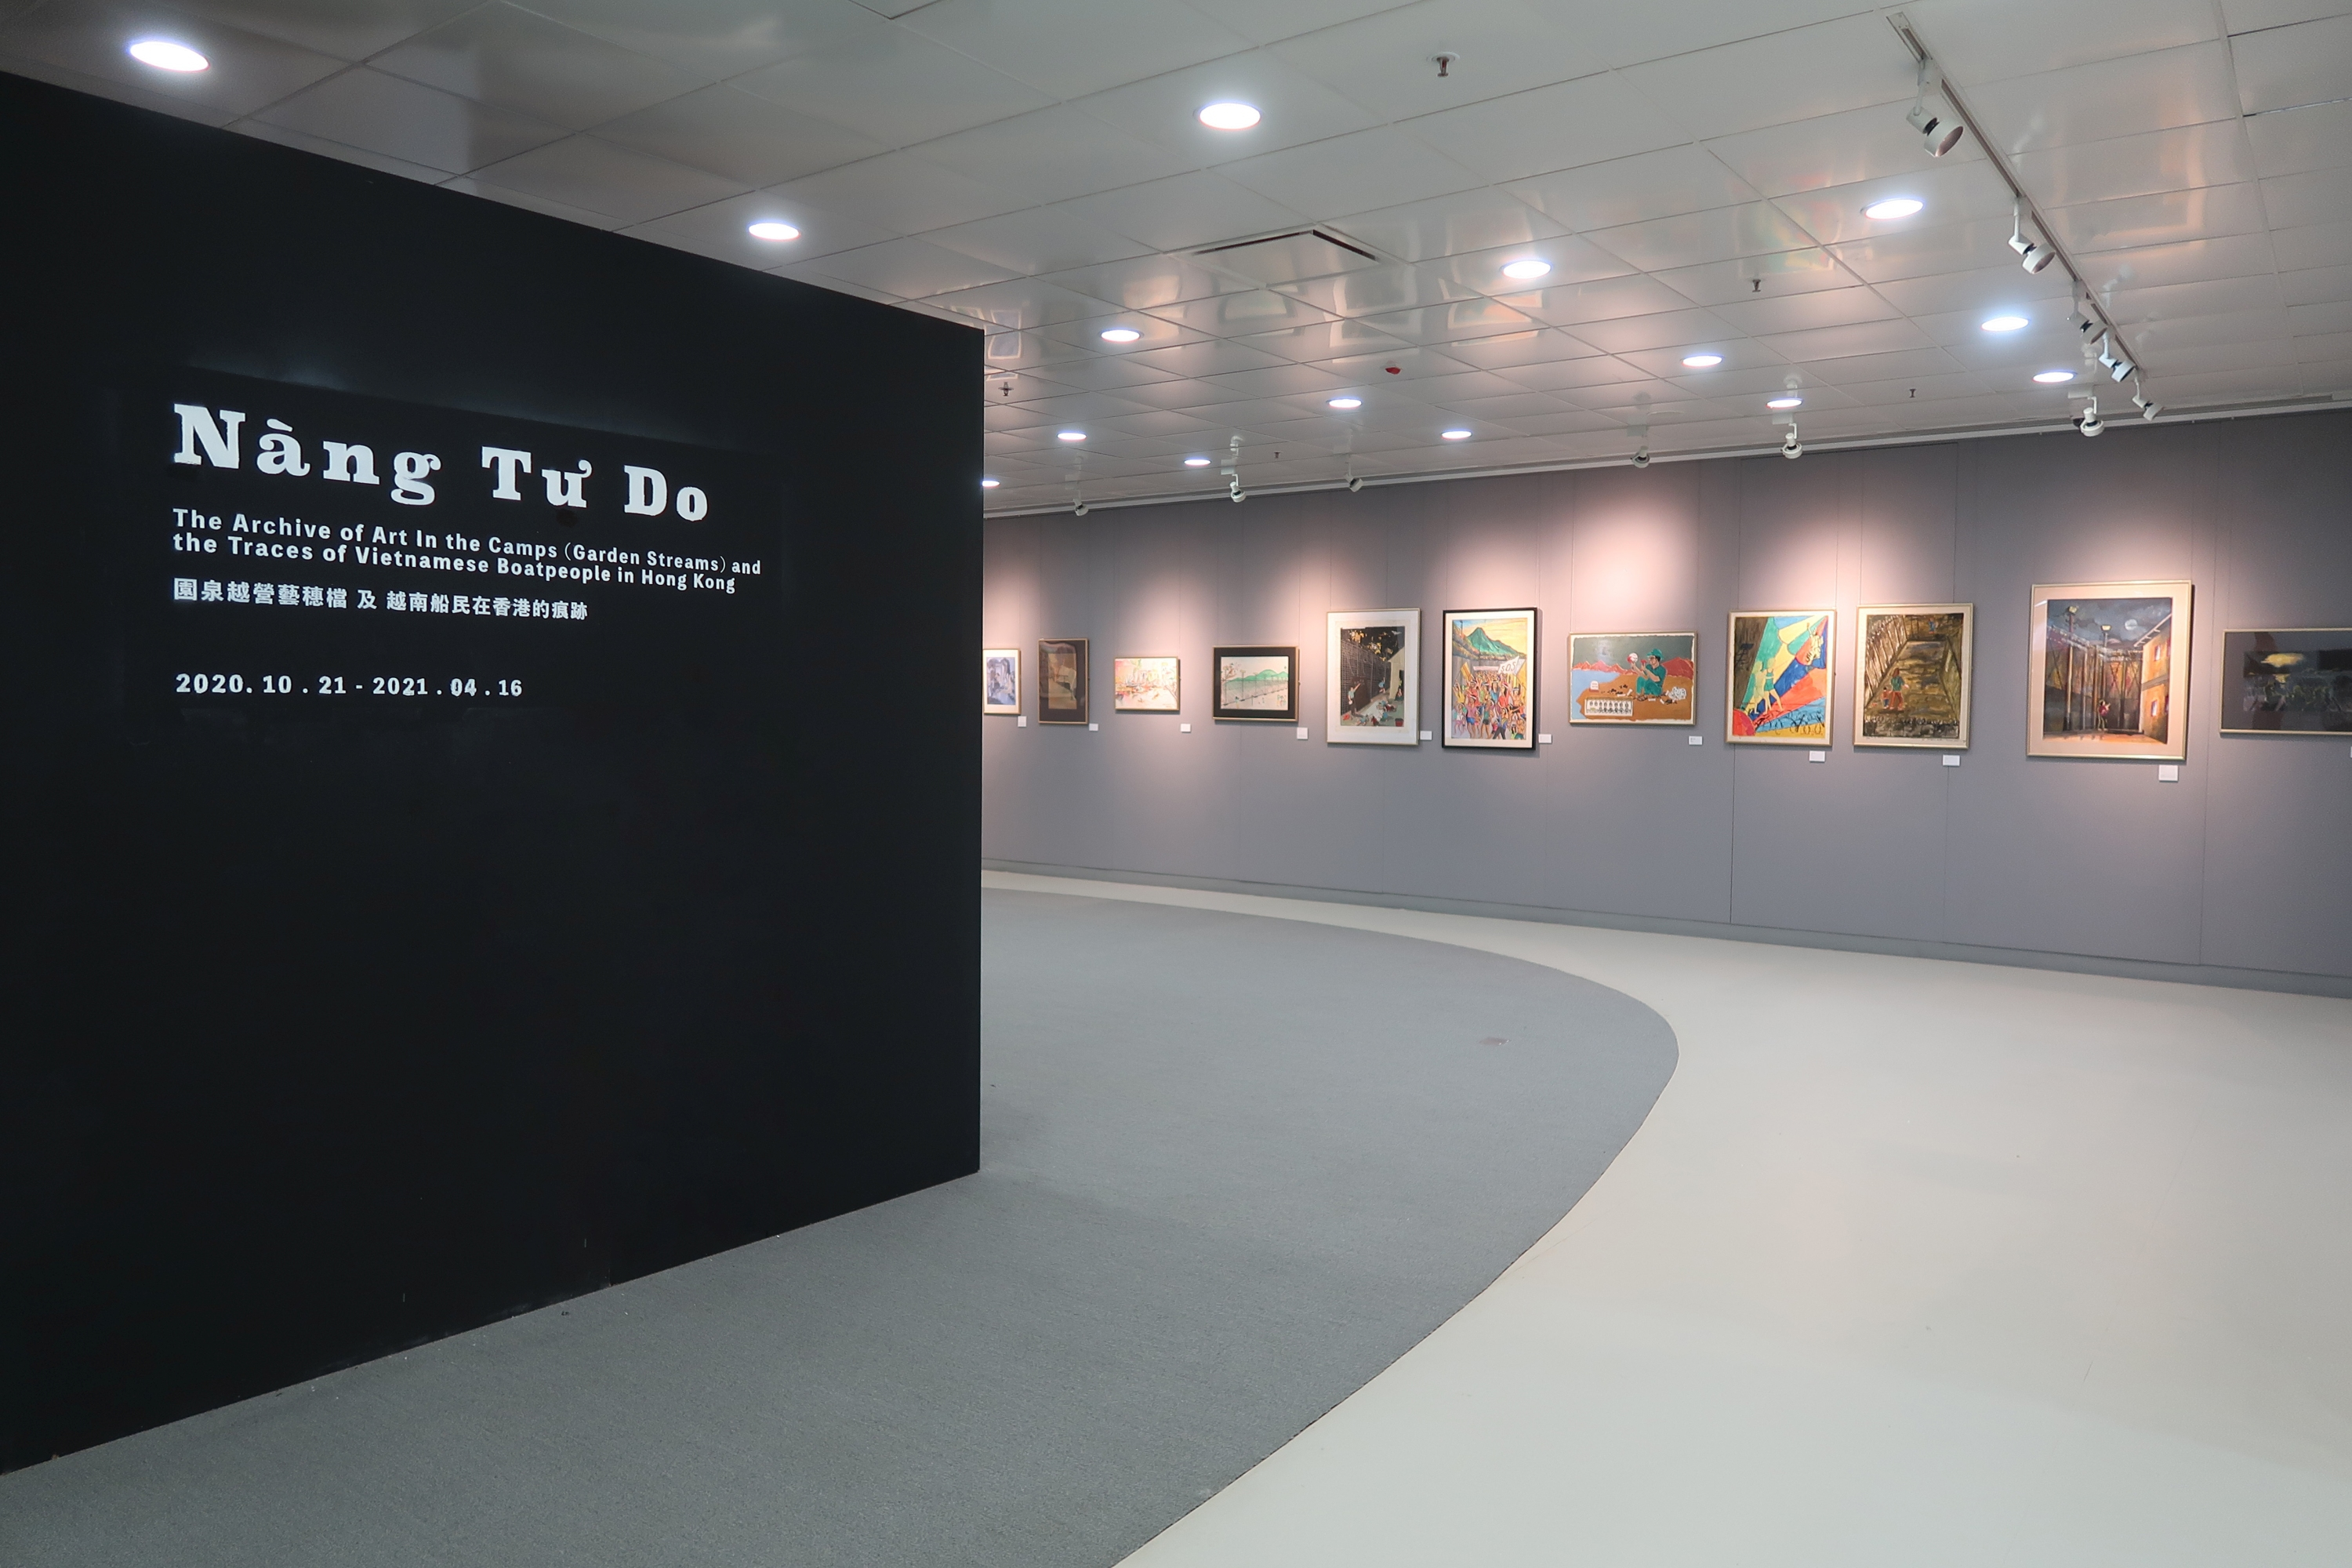 """The exhibition """"Nàng Tự Do"""", themed on the life of Vietnamese boatpeople in the detention camps in Hong Kong, will be held at the CUHK Main Library."""